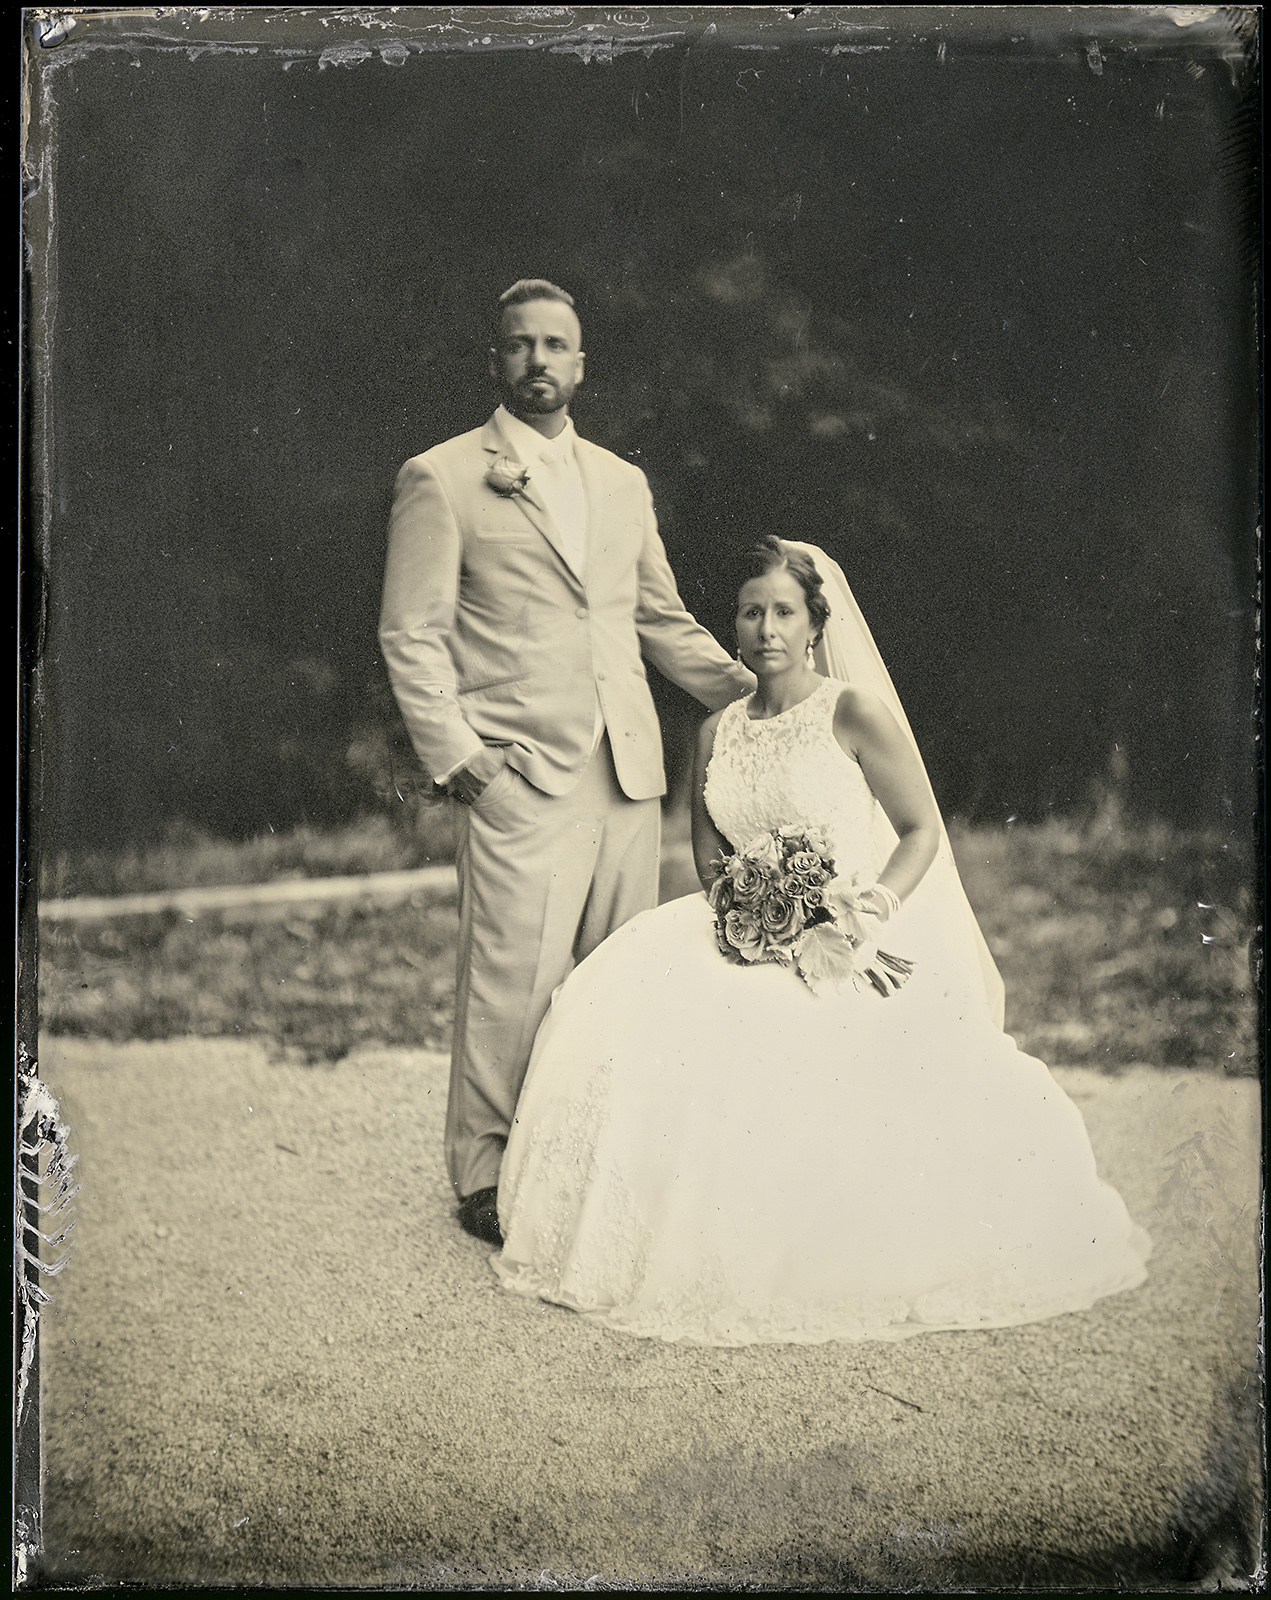 wedding photo rochester ny tintype tin type wet plate wetplate.jpg